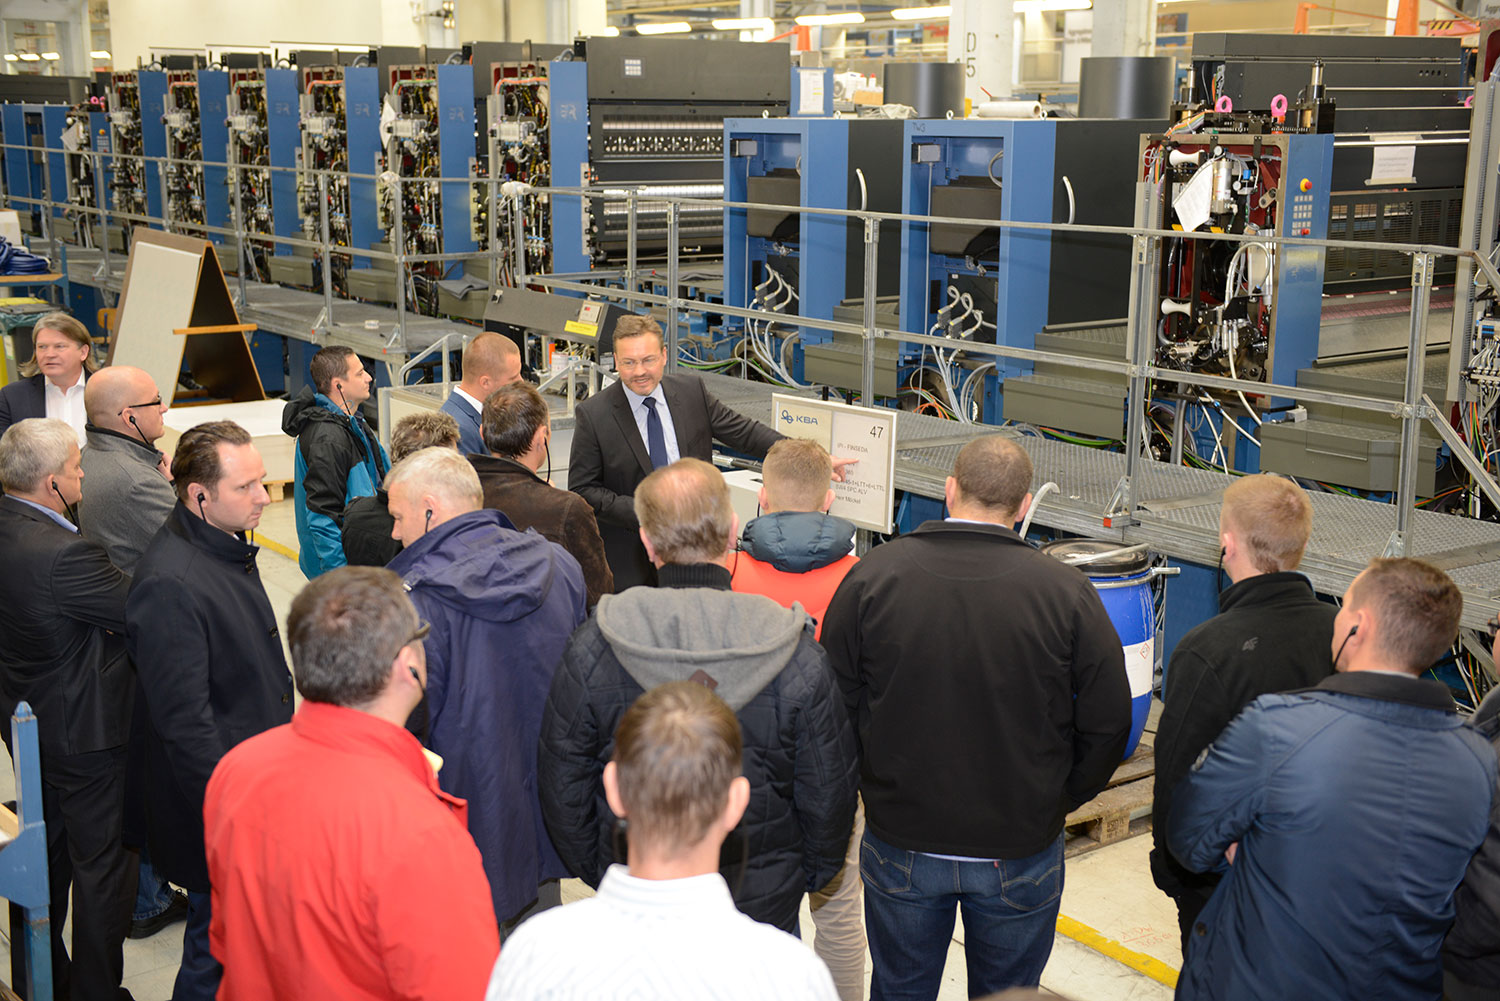 sascha-fischer-explains-a-long-rapida-145-with-14-printing-and-finishing